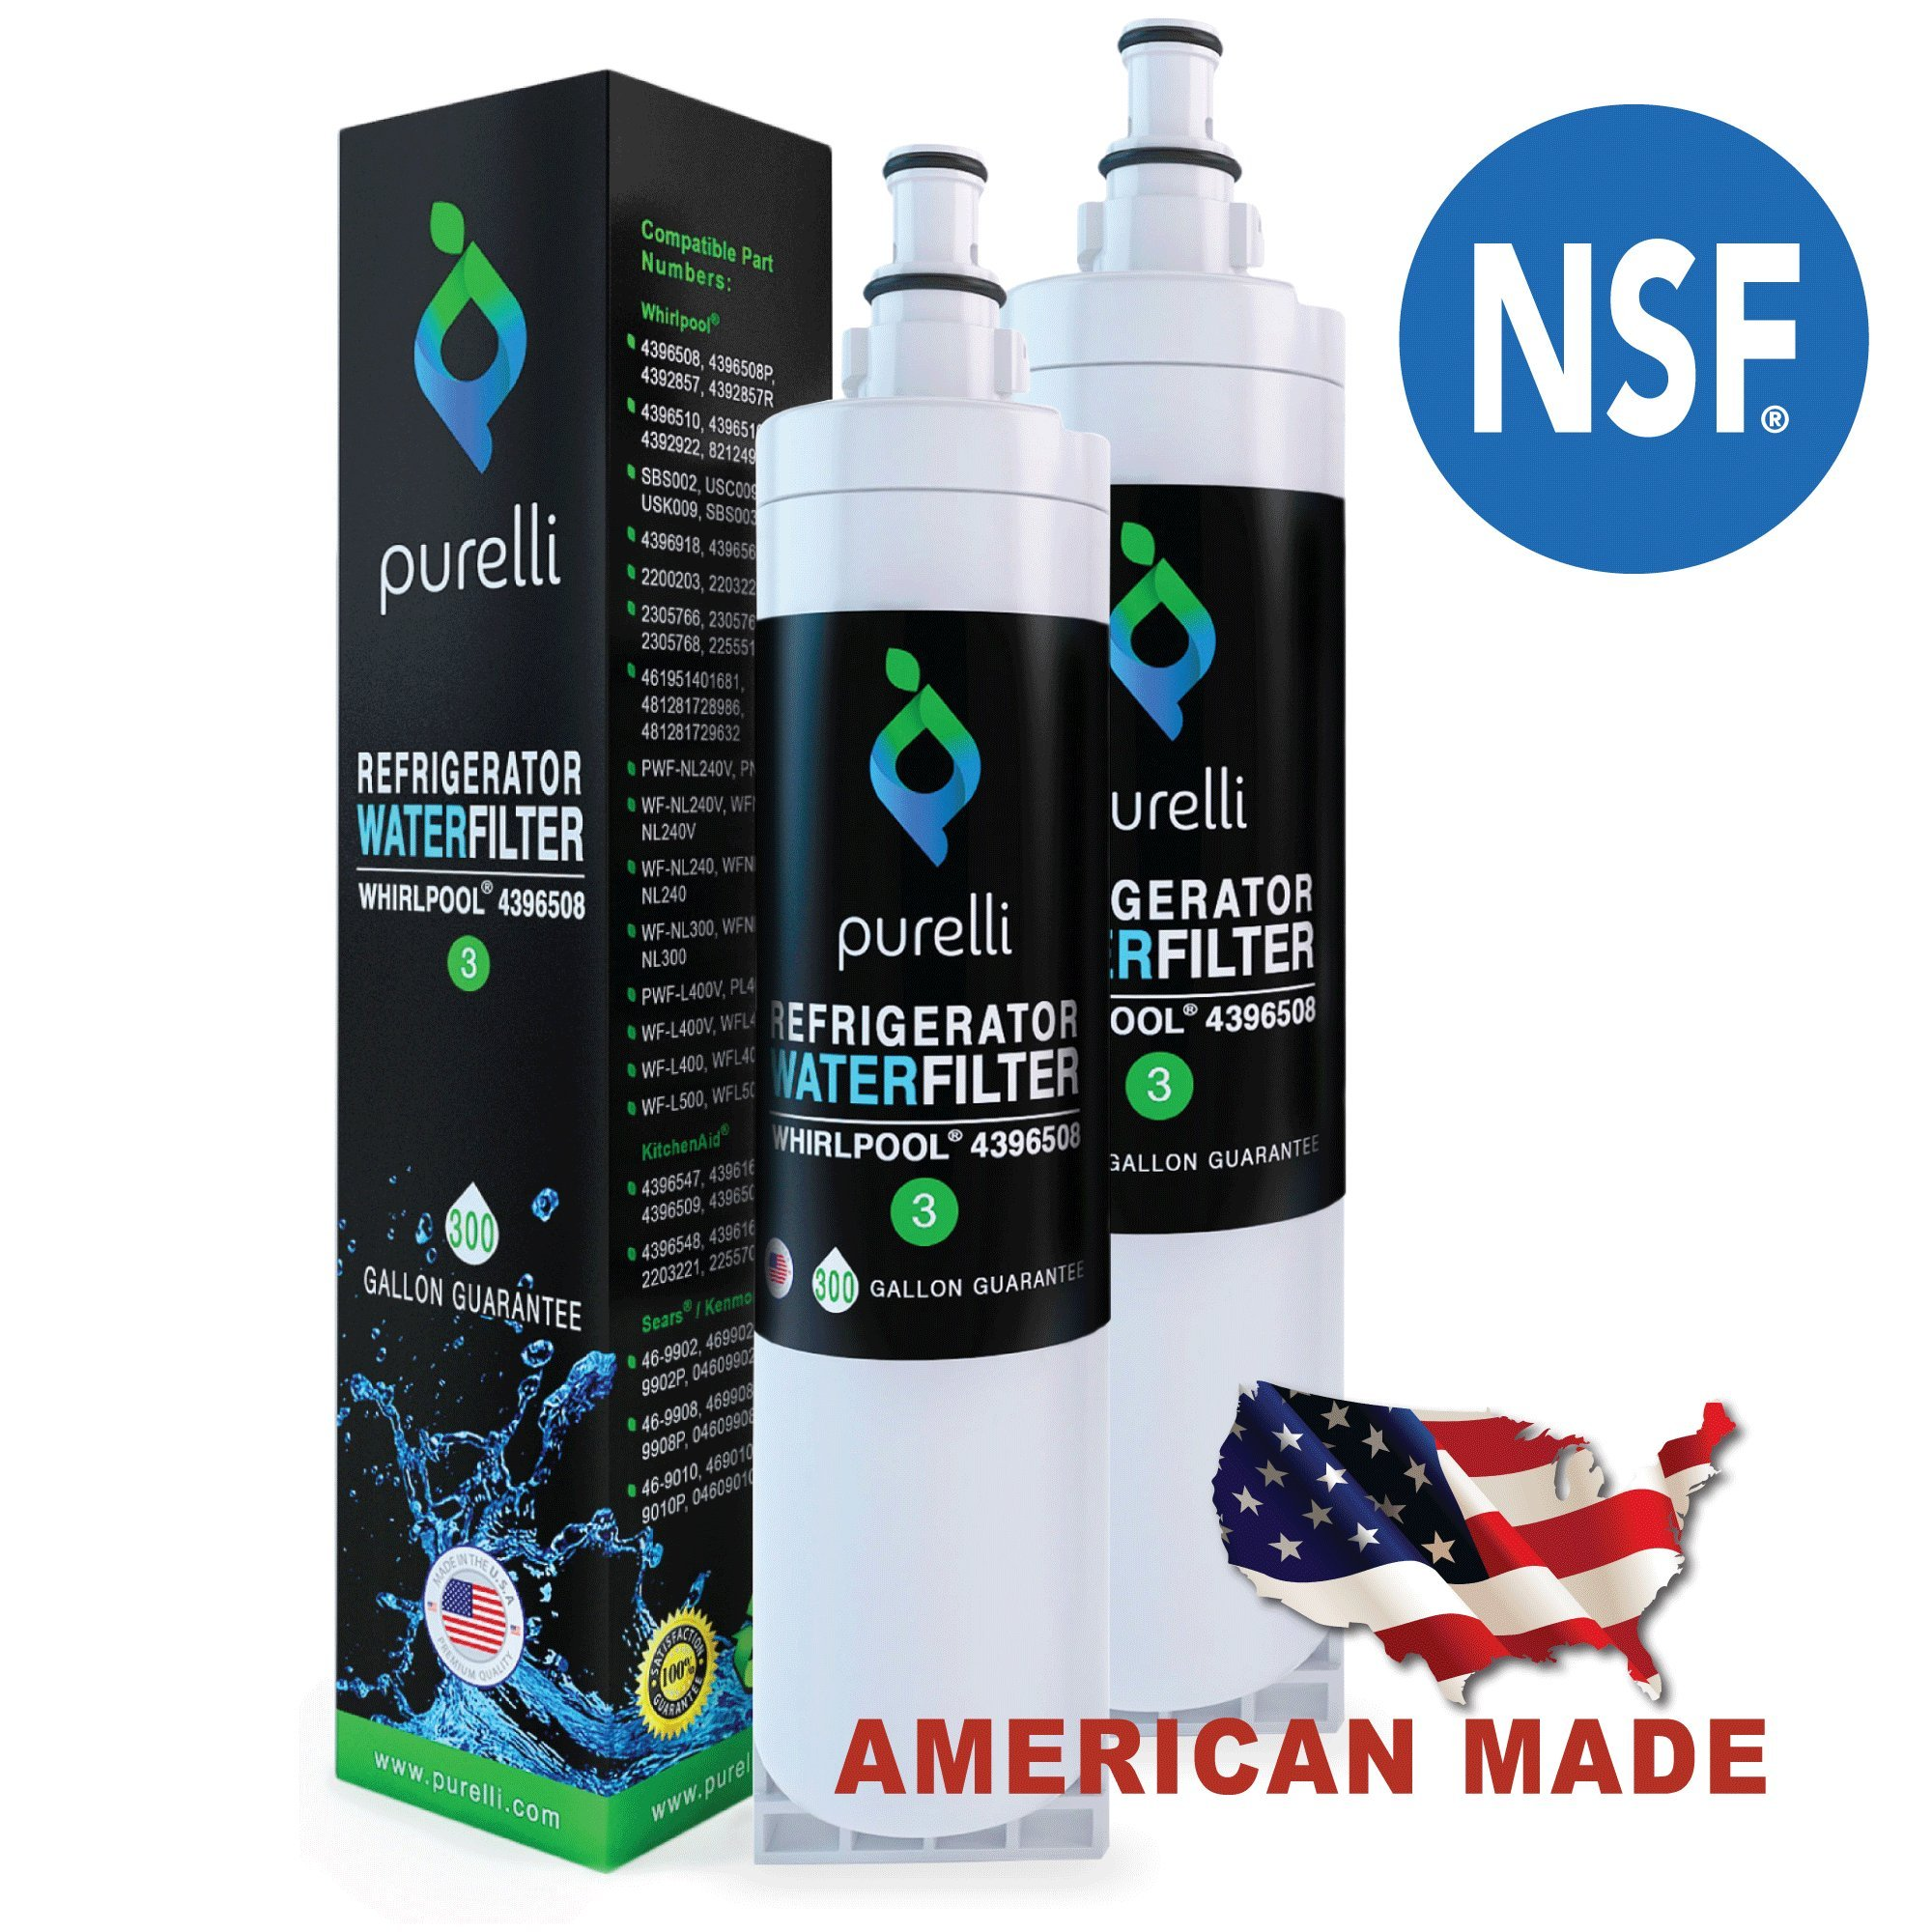 Purelli USA Made Premium Refrigerator Water Filter Compatible with Whirlpool PUR 4396508, 4396510, EDR5RXD1, 4396508p, NLC240V, for Kitchenaid Maytag Whirlpool Side by Side Refrigerator (2 pack) by Purelli